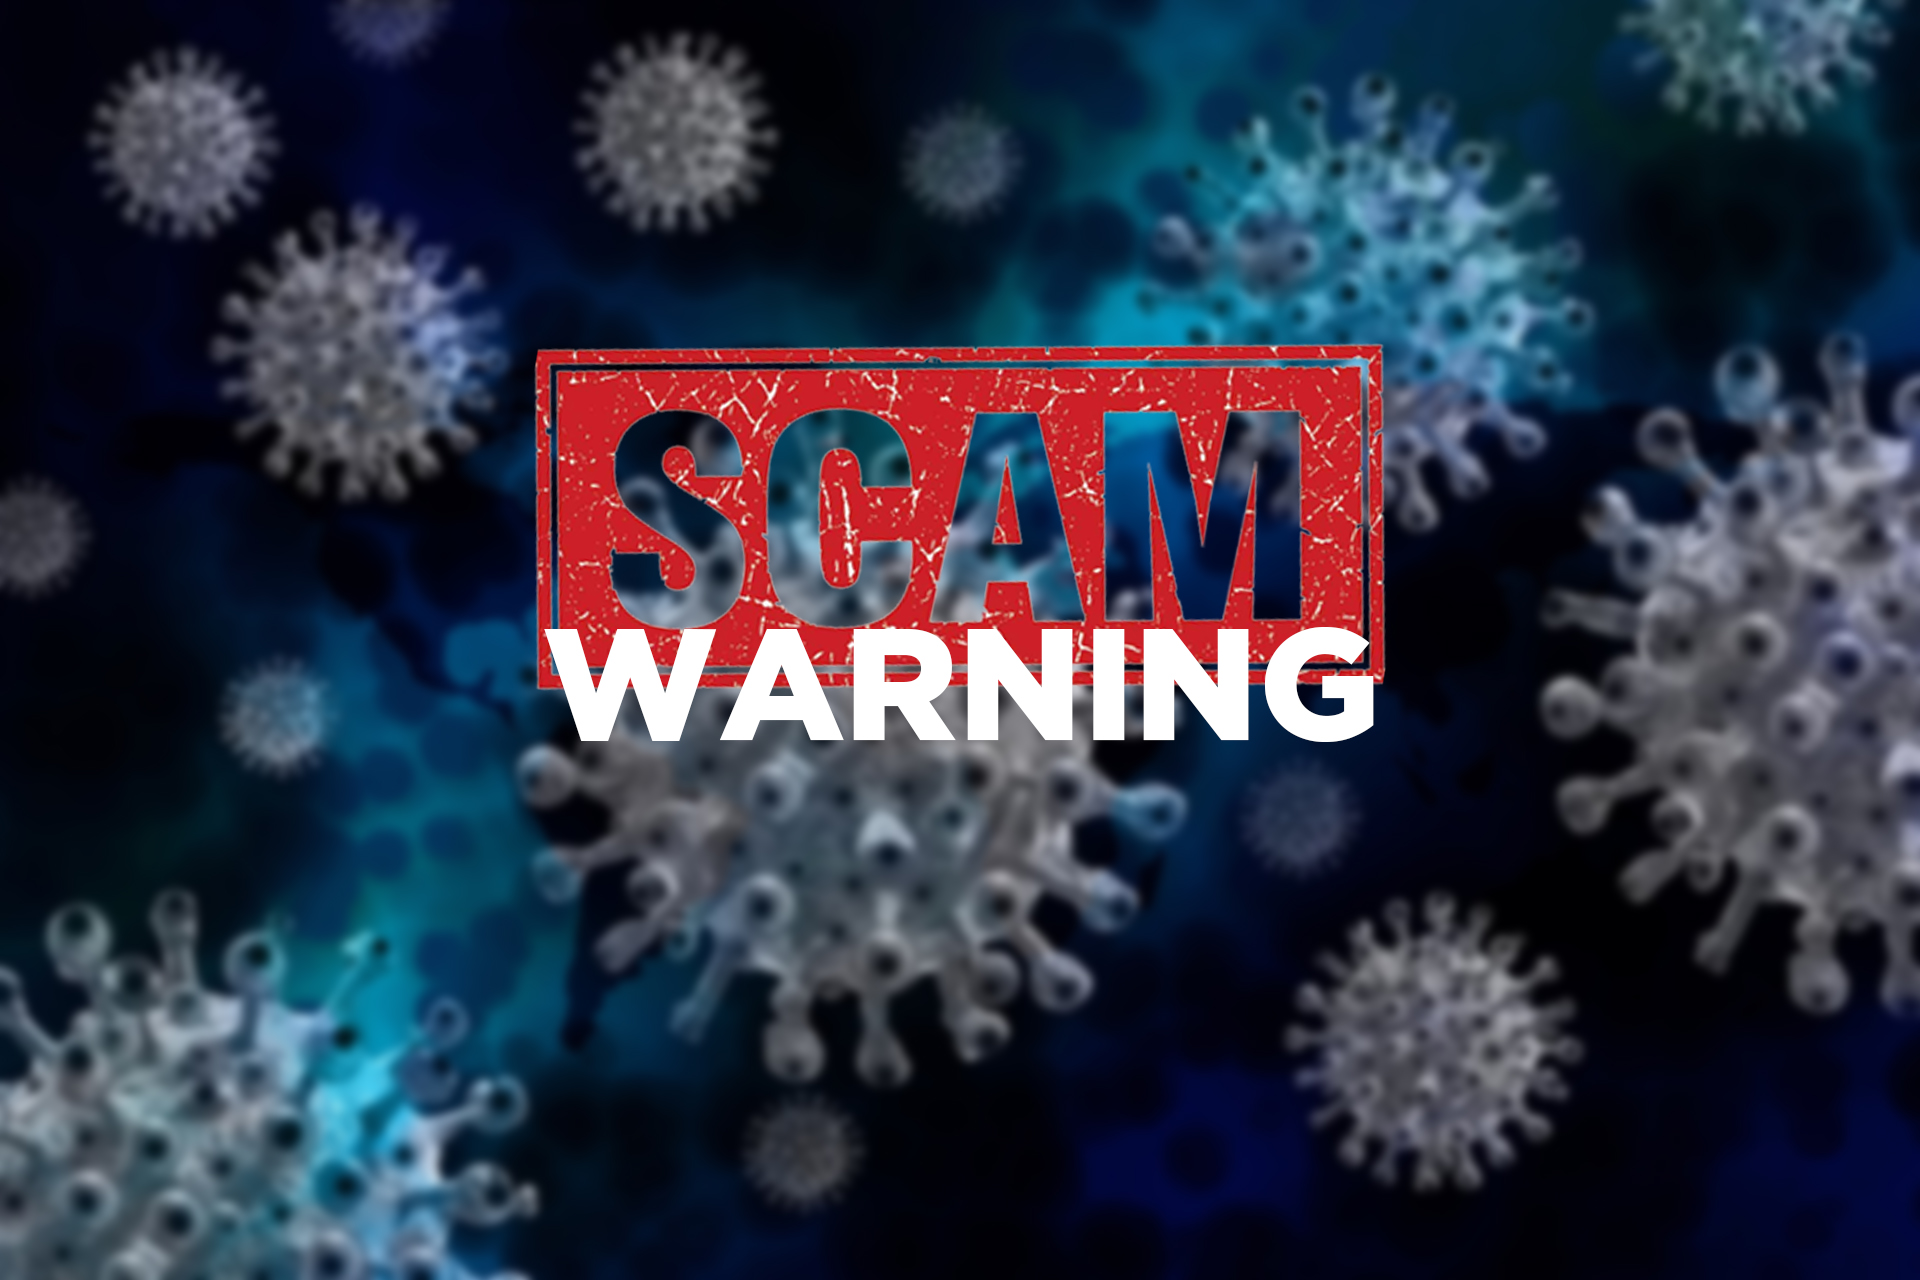 Job seeker tips to avoid scams in a pandemic